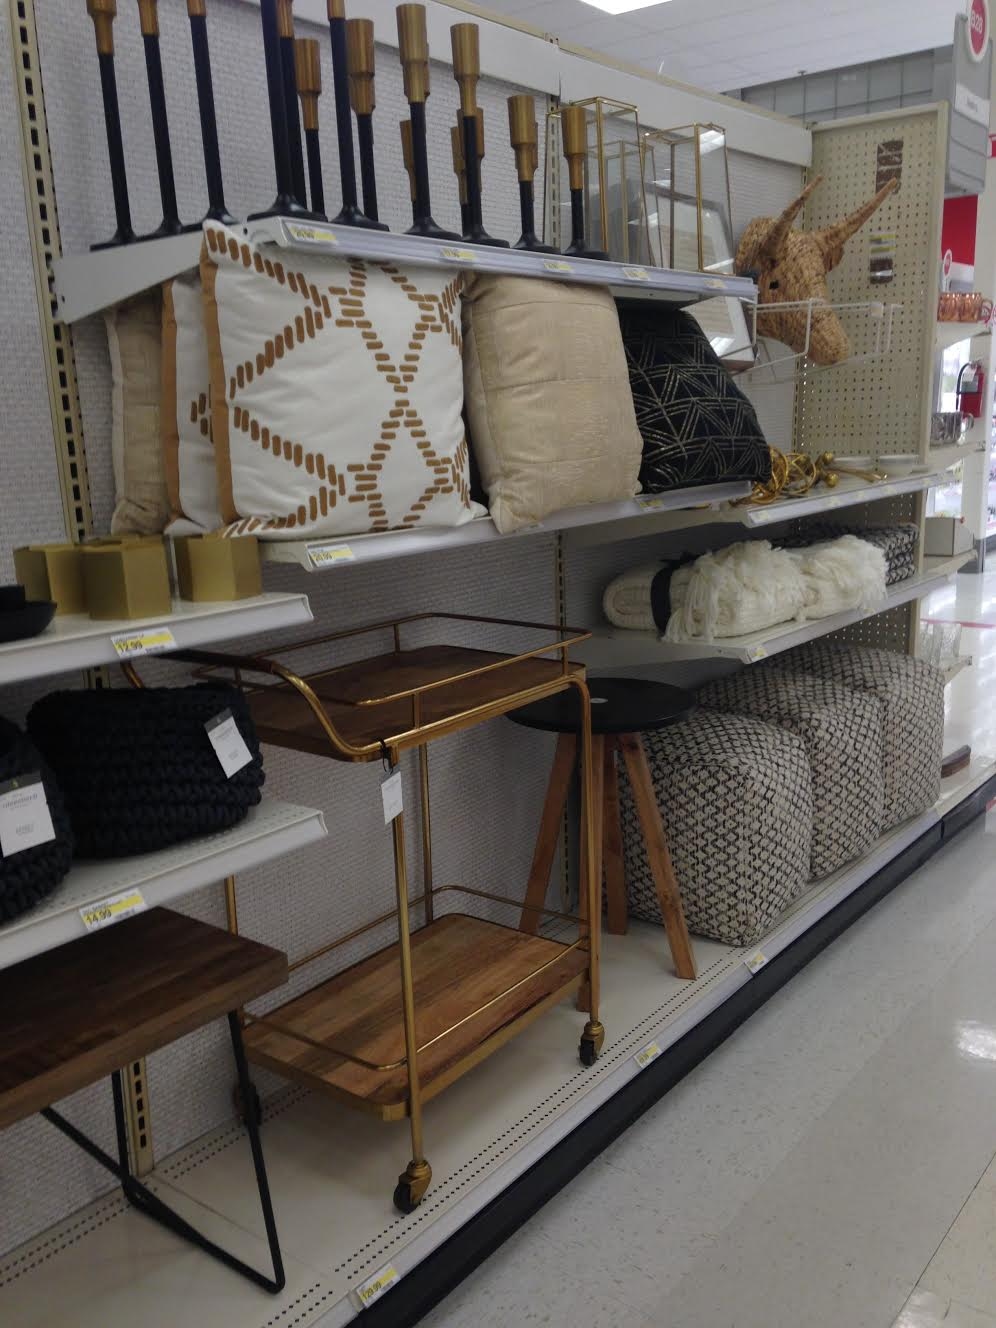 target home decor brands let s go shopping fall decor inspiration from target 11753